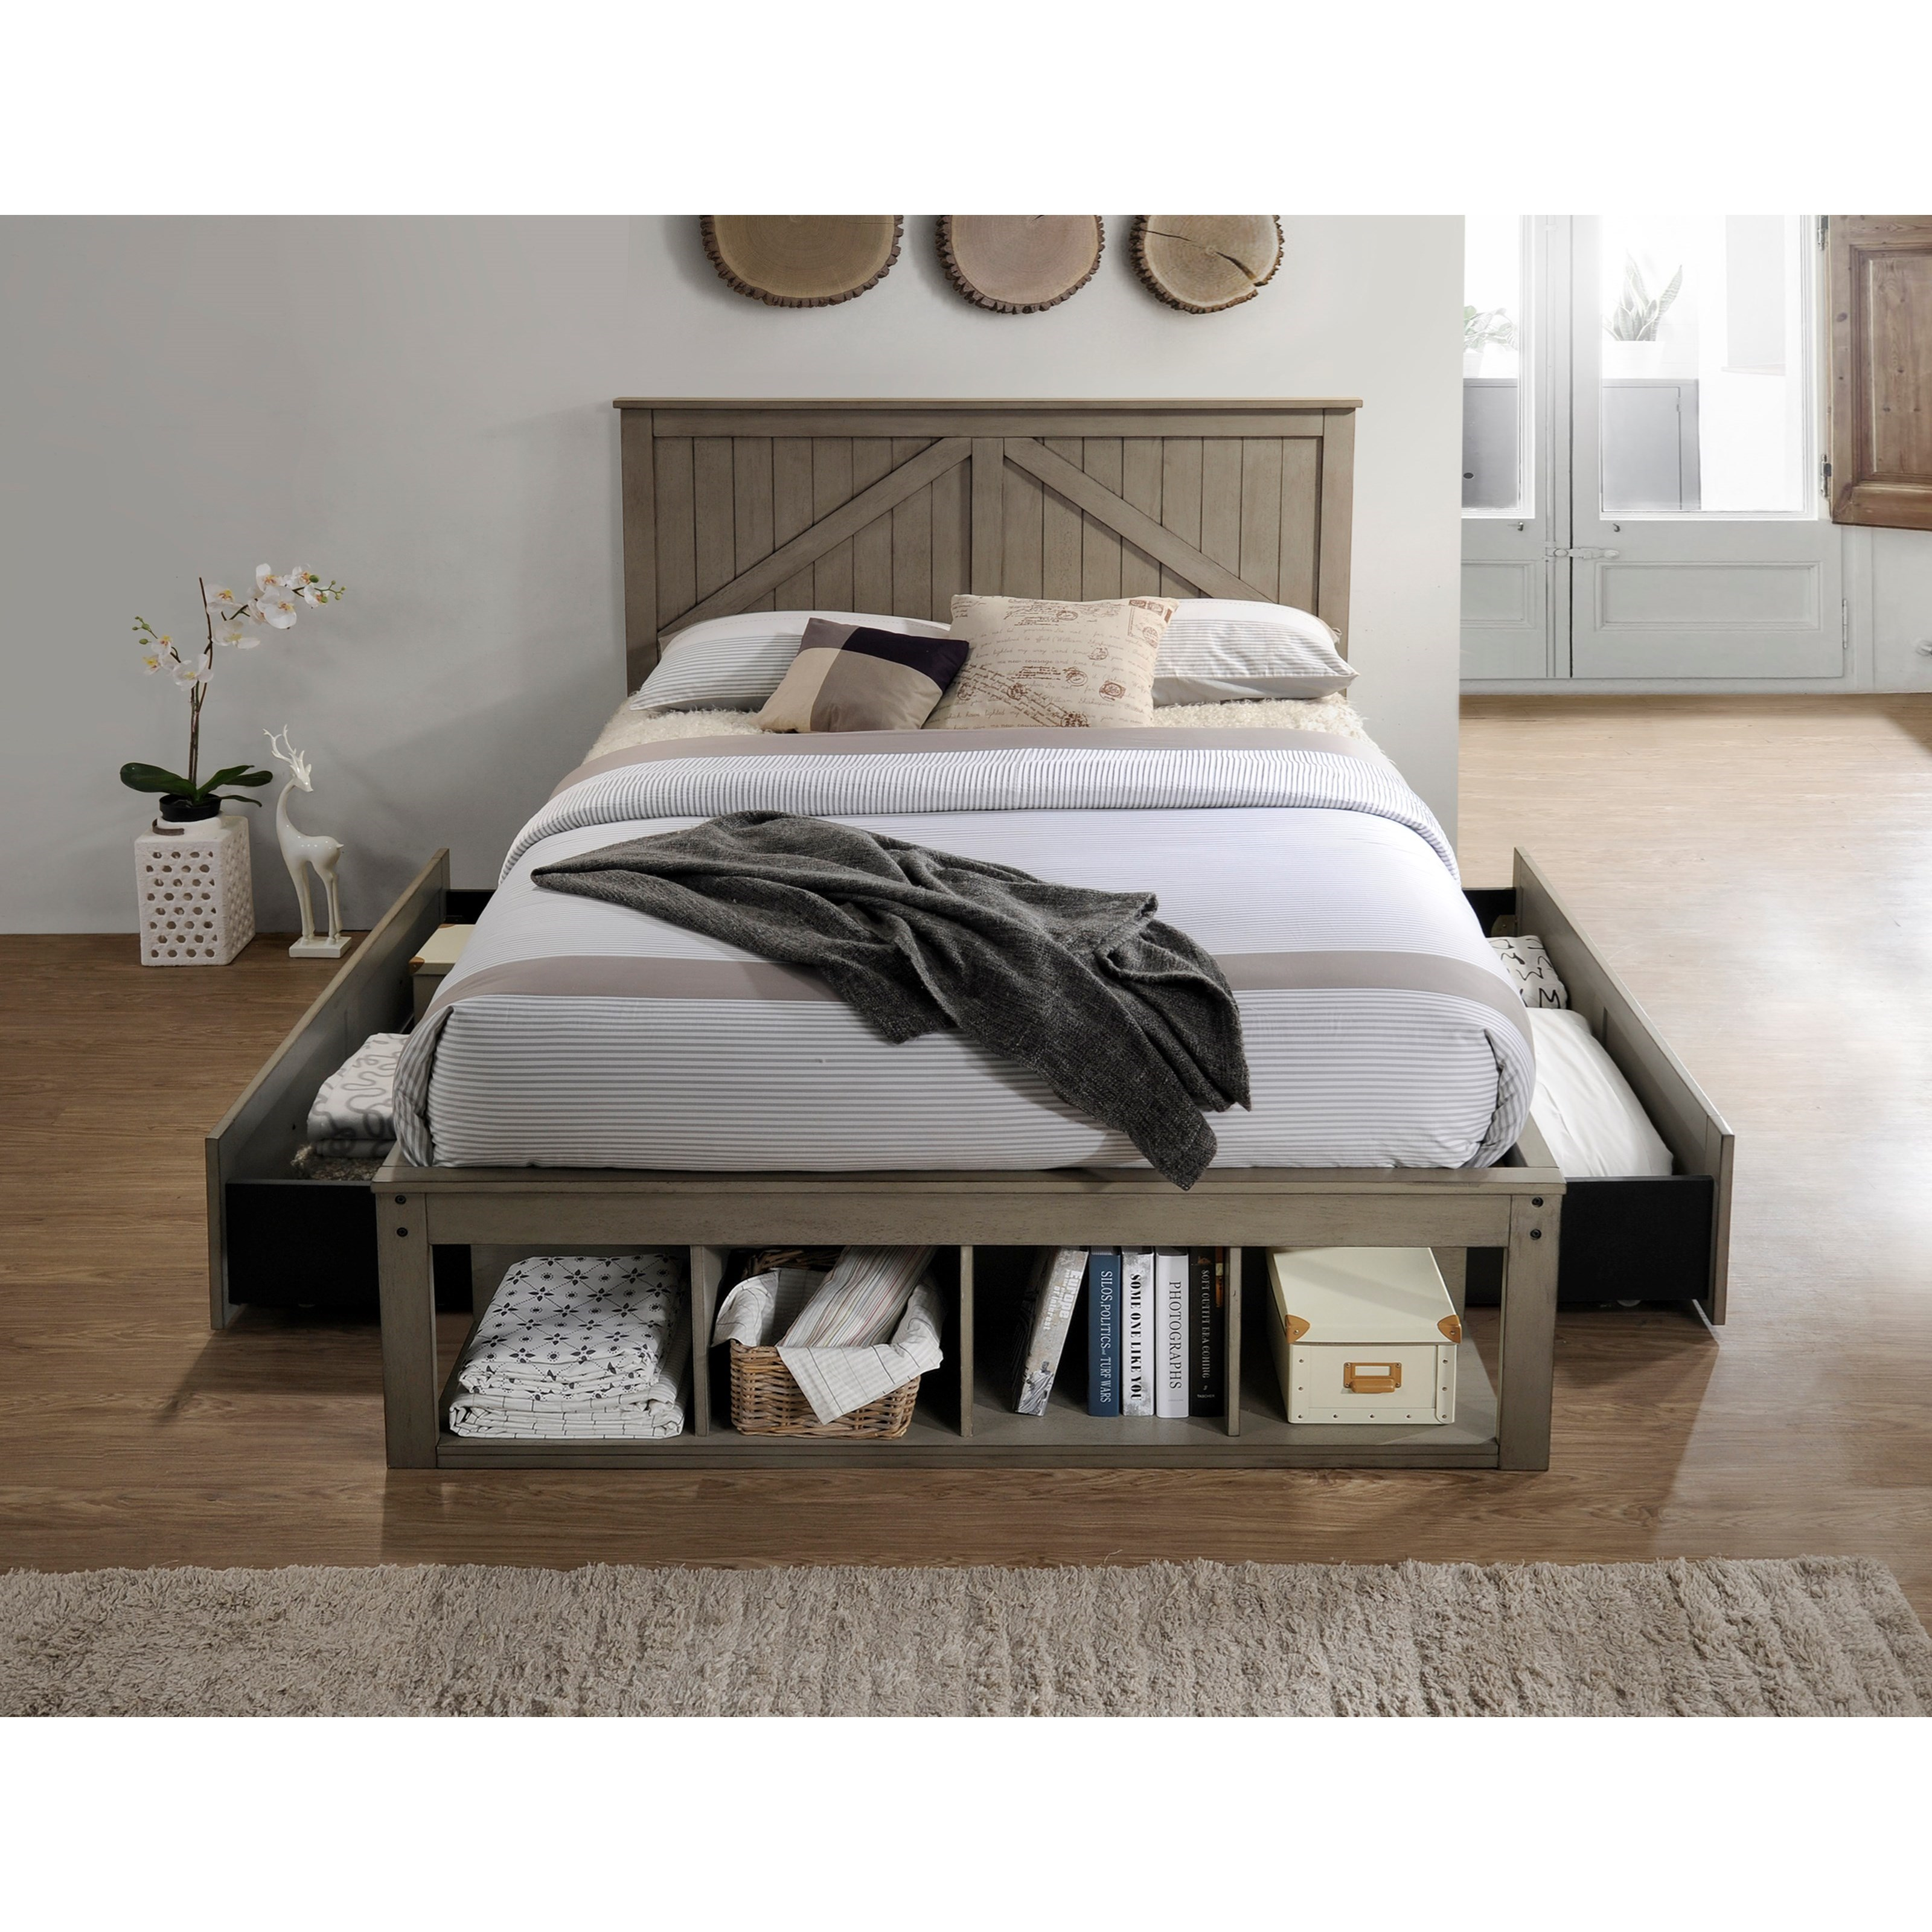 United Furniture Industries Ashland Full Captains Bed - Item Number: 3016-88+89+87